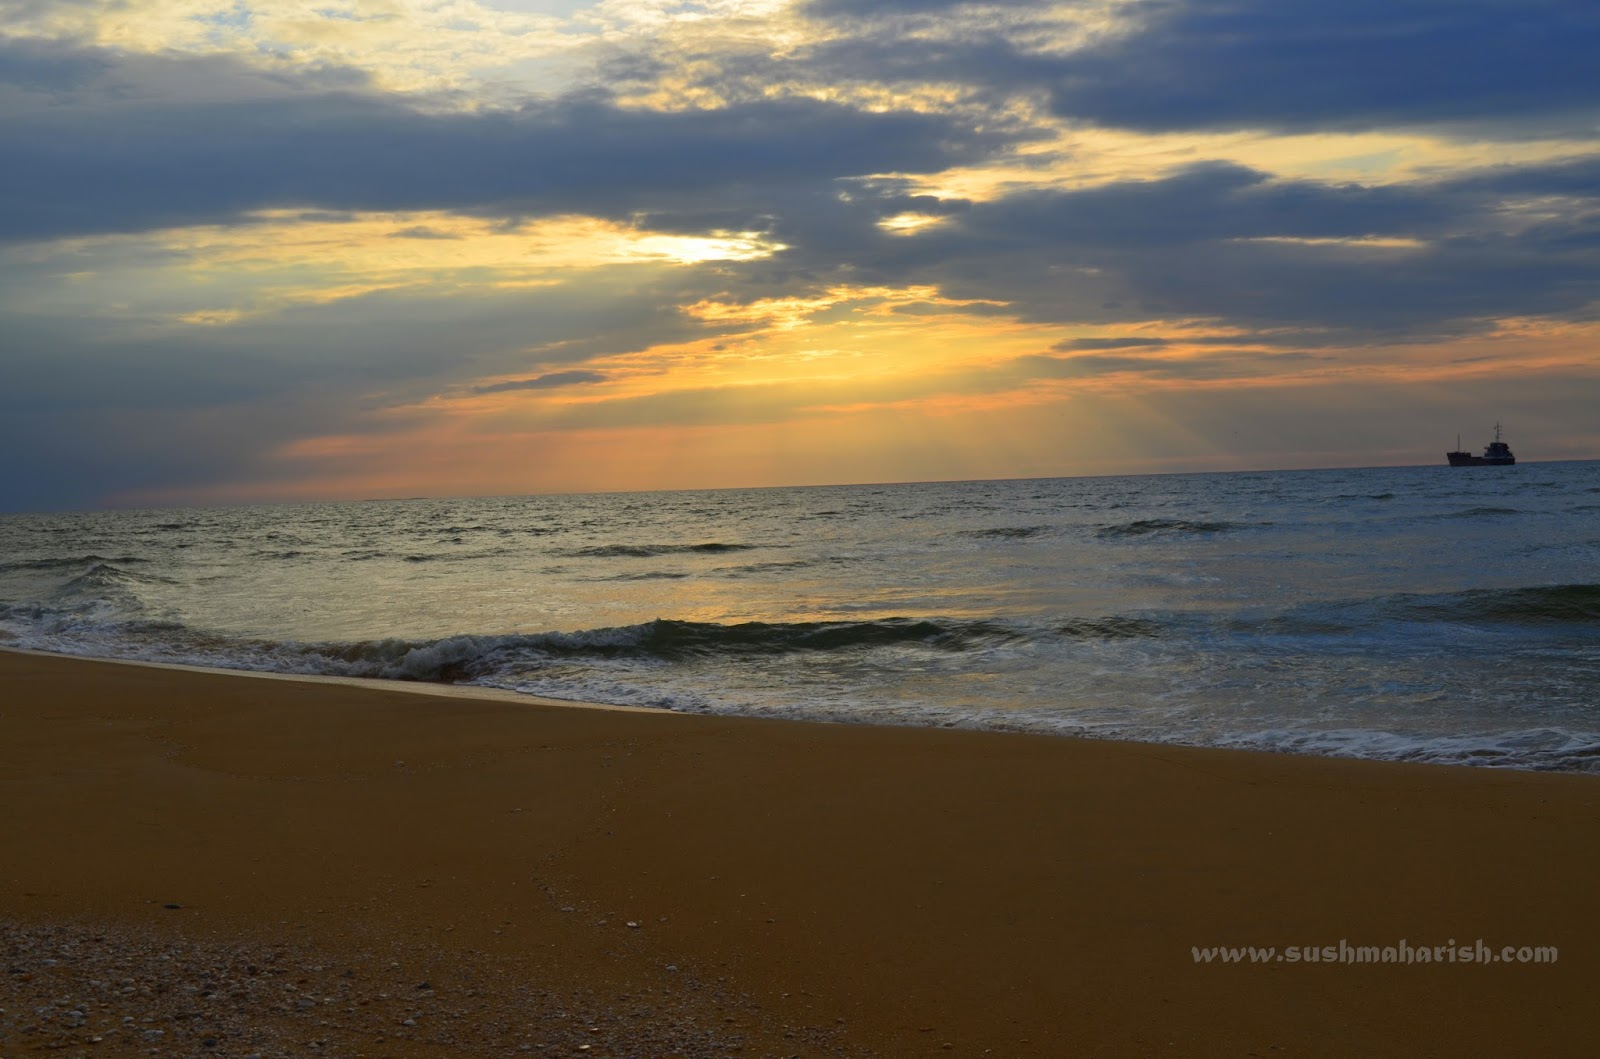 Two Best Beaches Of Udupi - Bengre The Silent Estuary And The Swarming Malpe 9